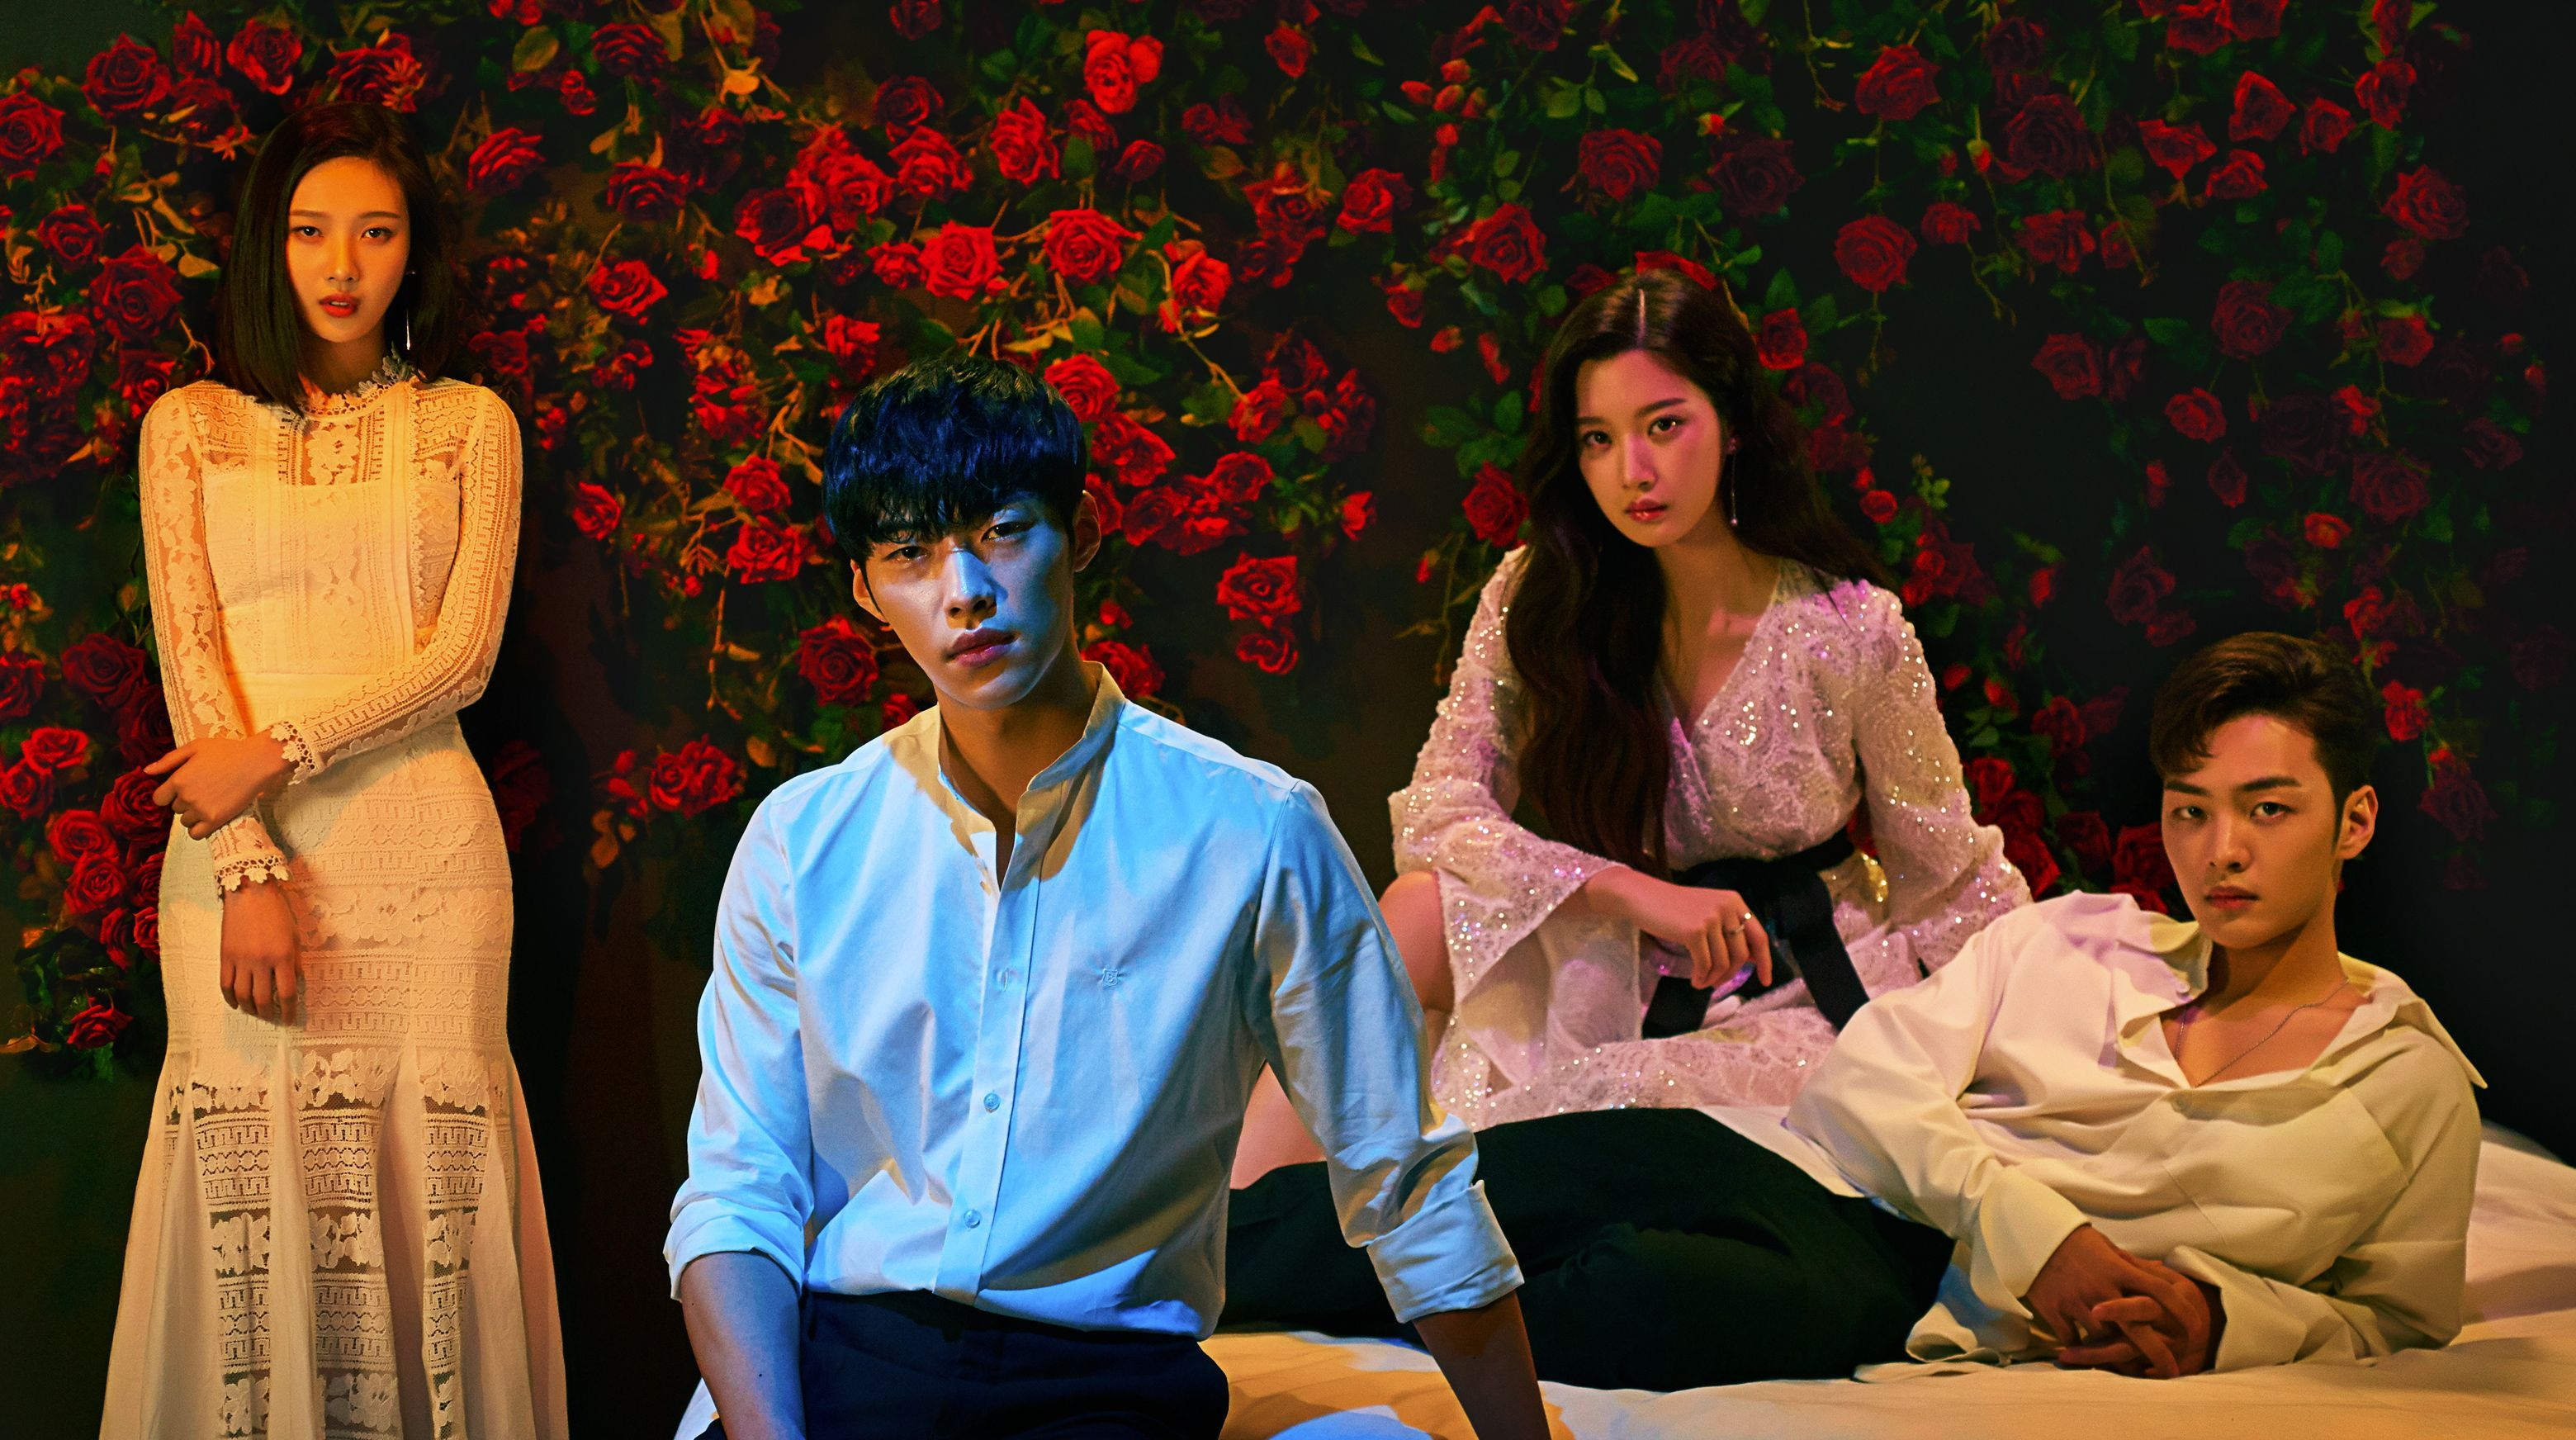 Many People Wish To Be The Great Tempter Who Has Power Over Love However Once They Actually Experience Love They Begin To Understa Kdrama Drama Korean Drama